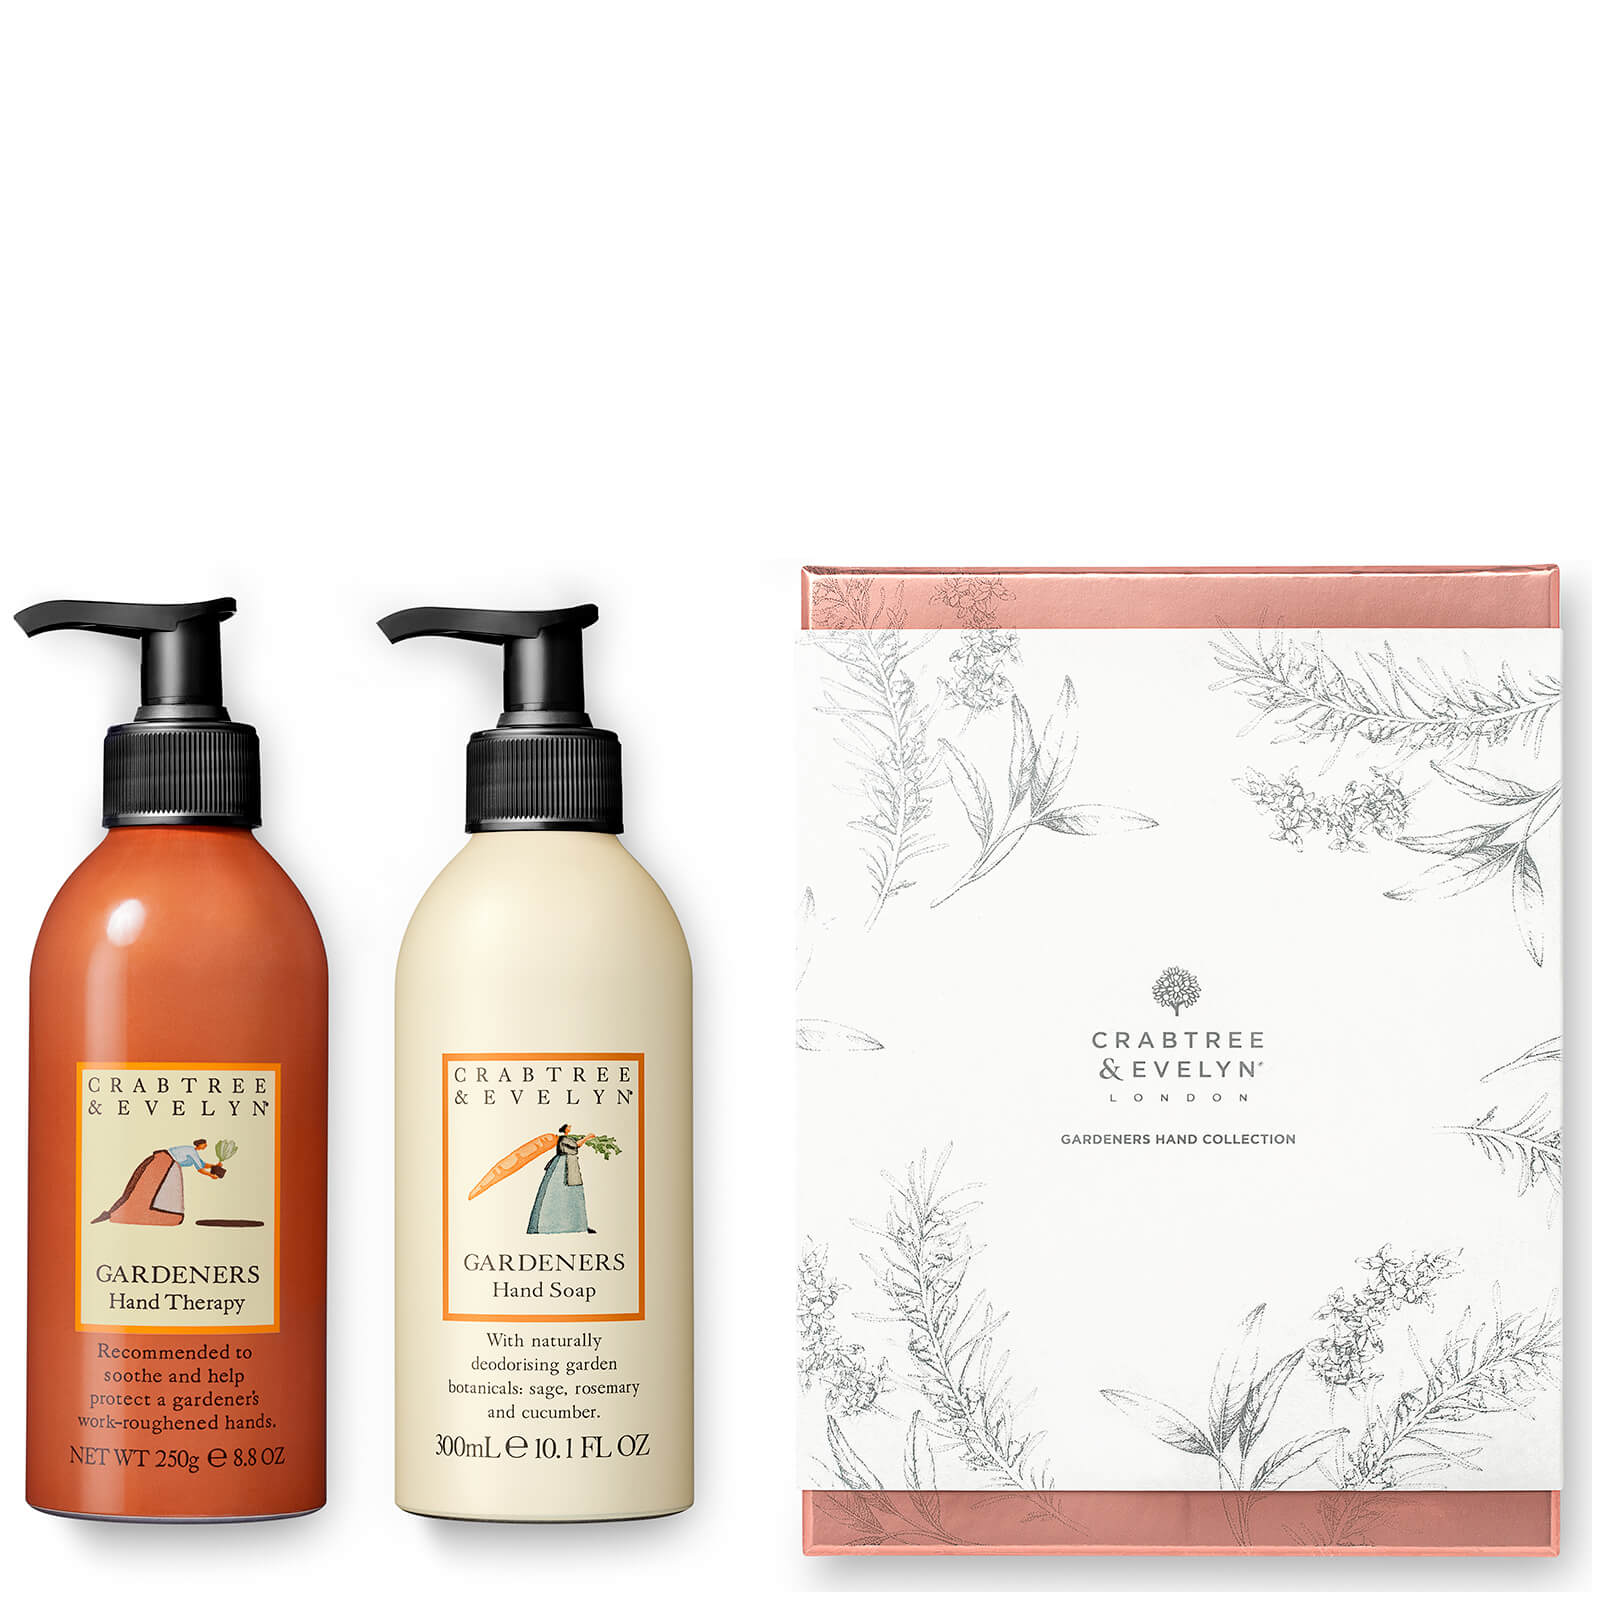 Crabtree & Evelyn Gardeners Hand Collection Duo Collection (Worth £39.00)